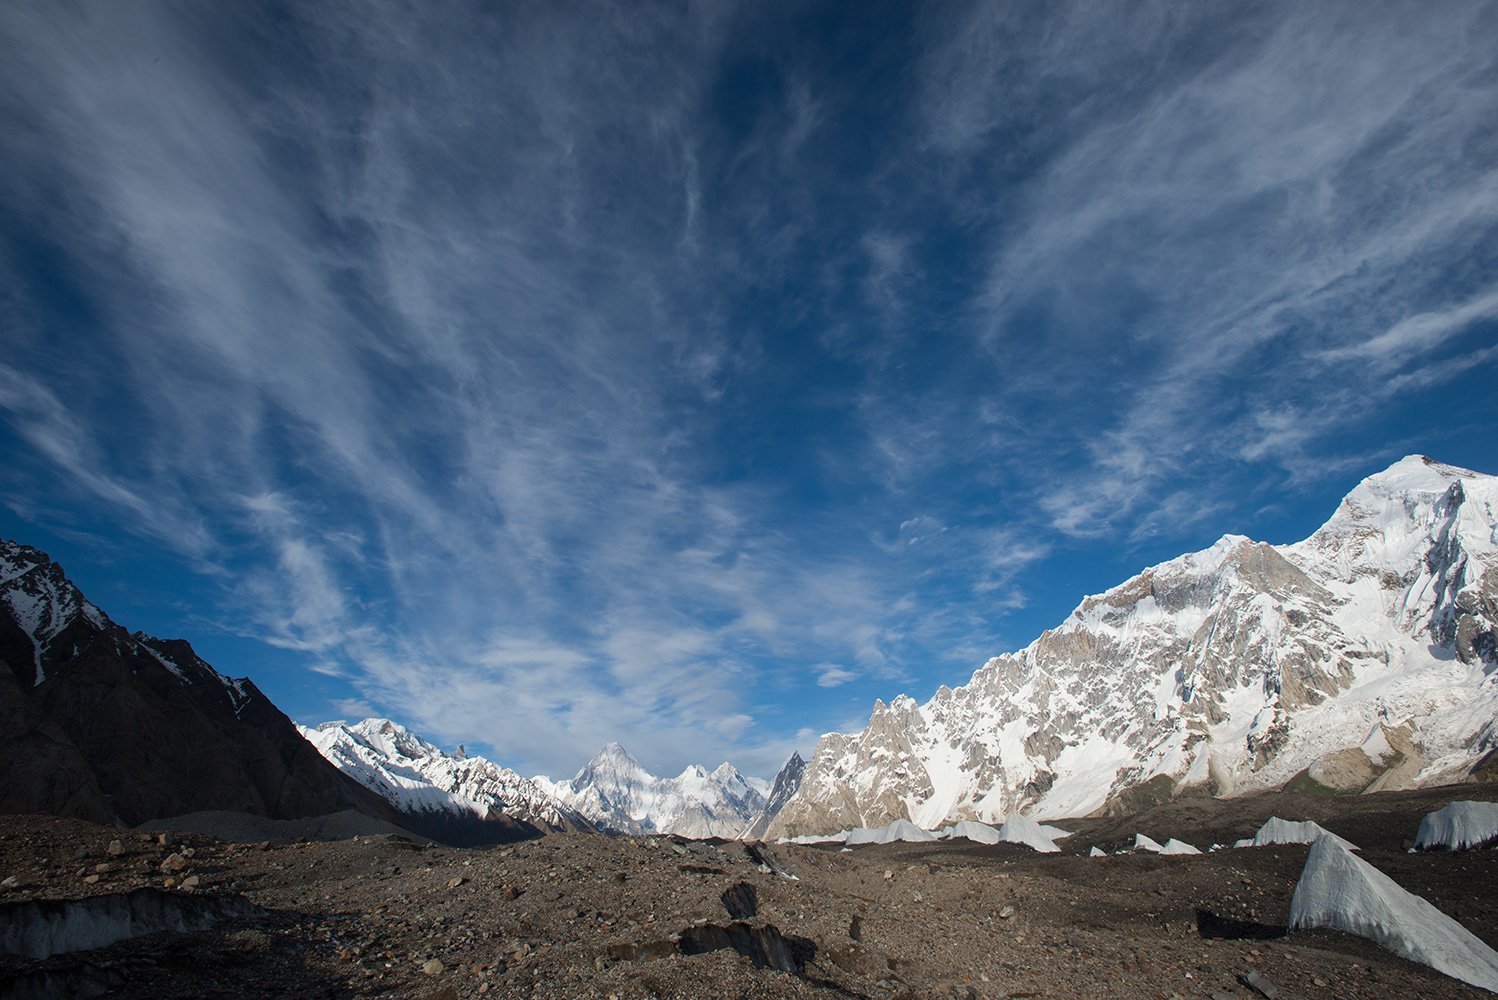 A view up the glacier from Shokspong (Goro 1) with Gasherbrum IV straight ahead and Biarchedi (6781m) on the far right